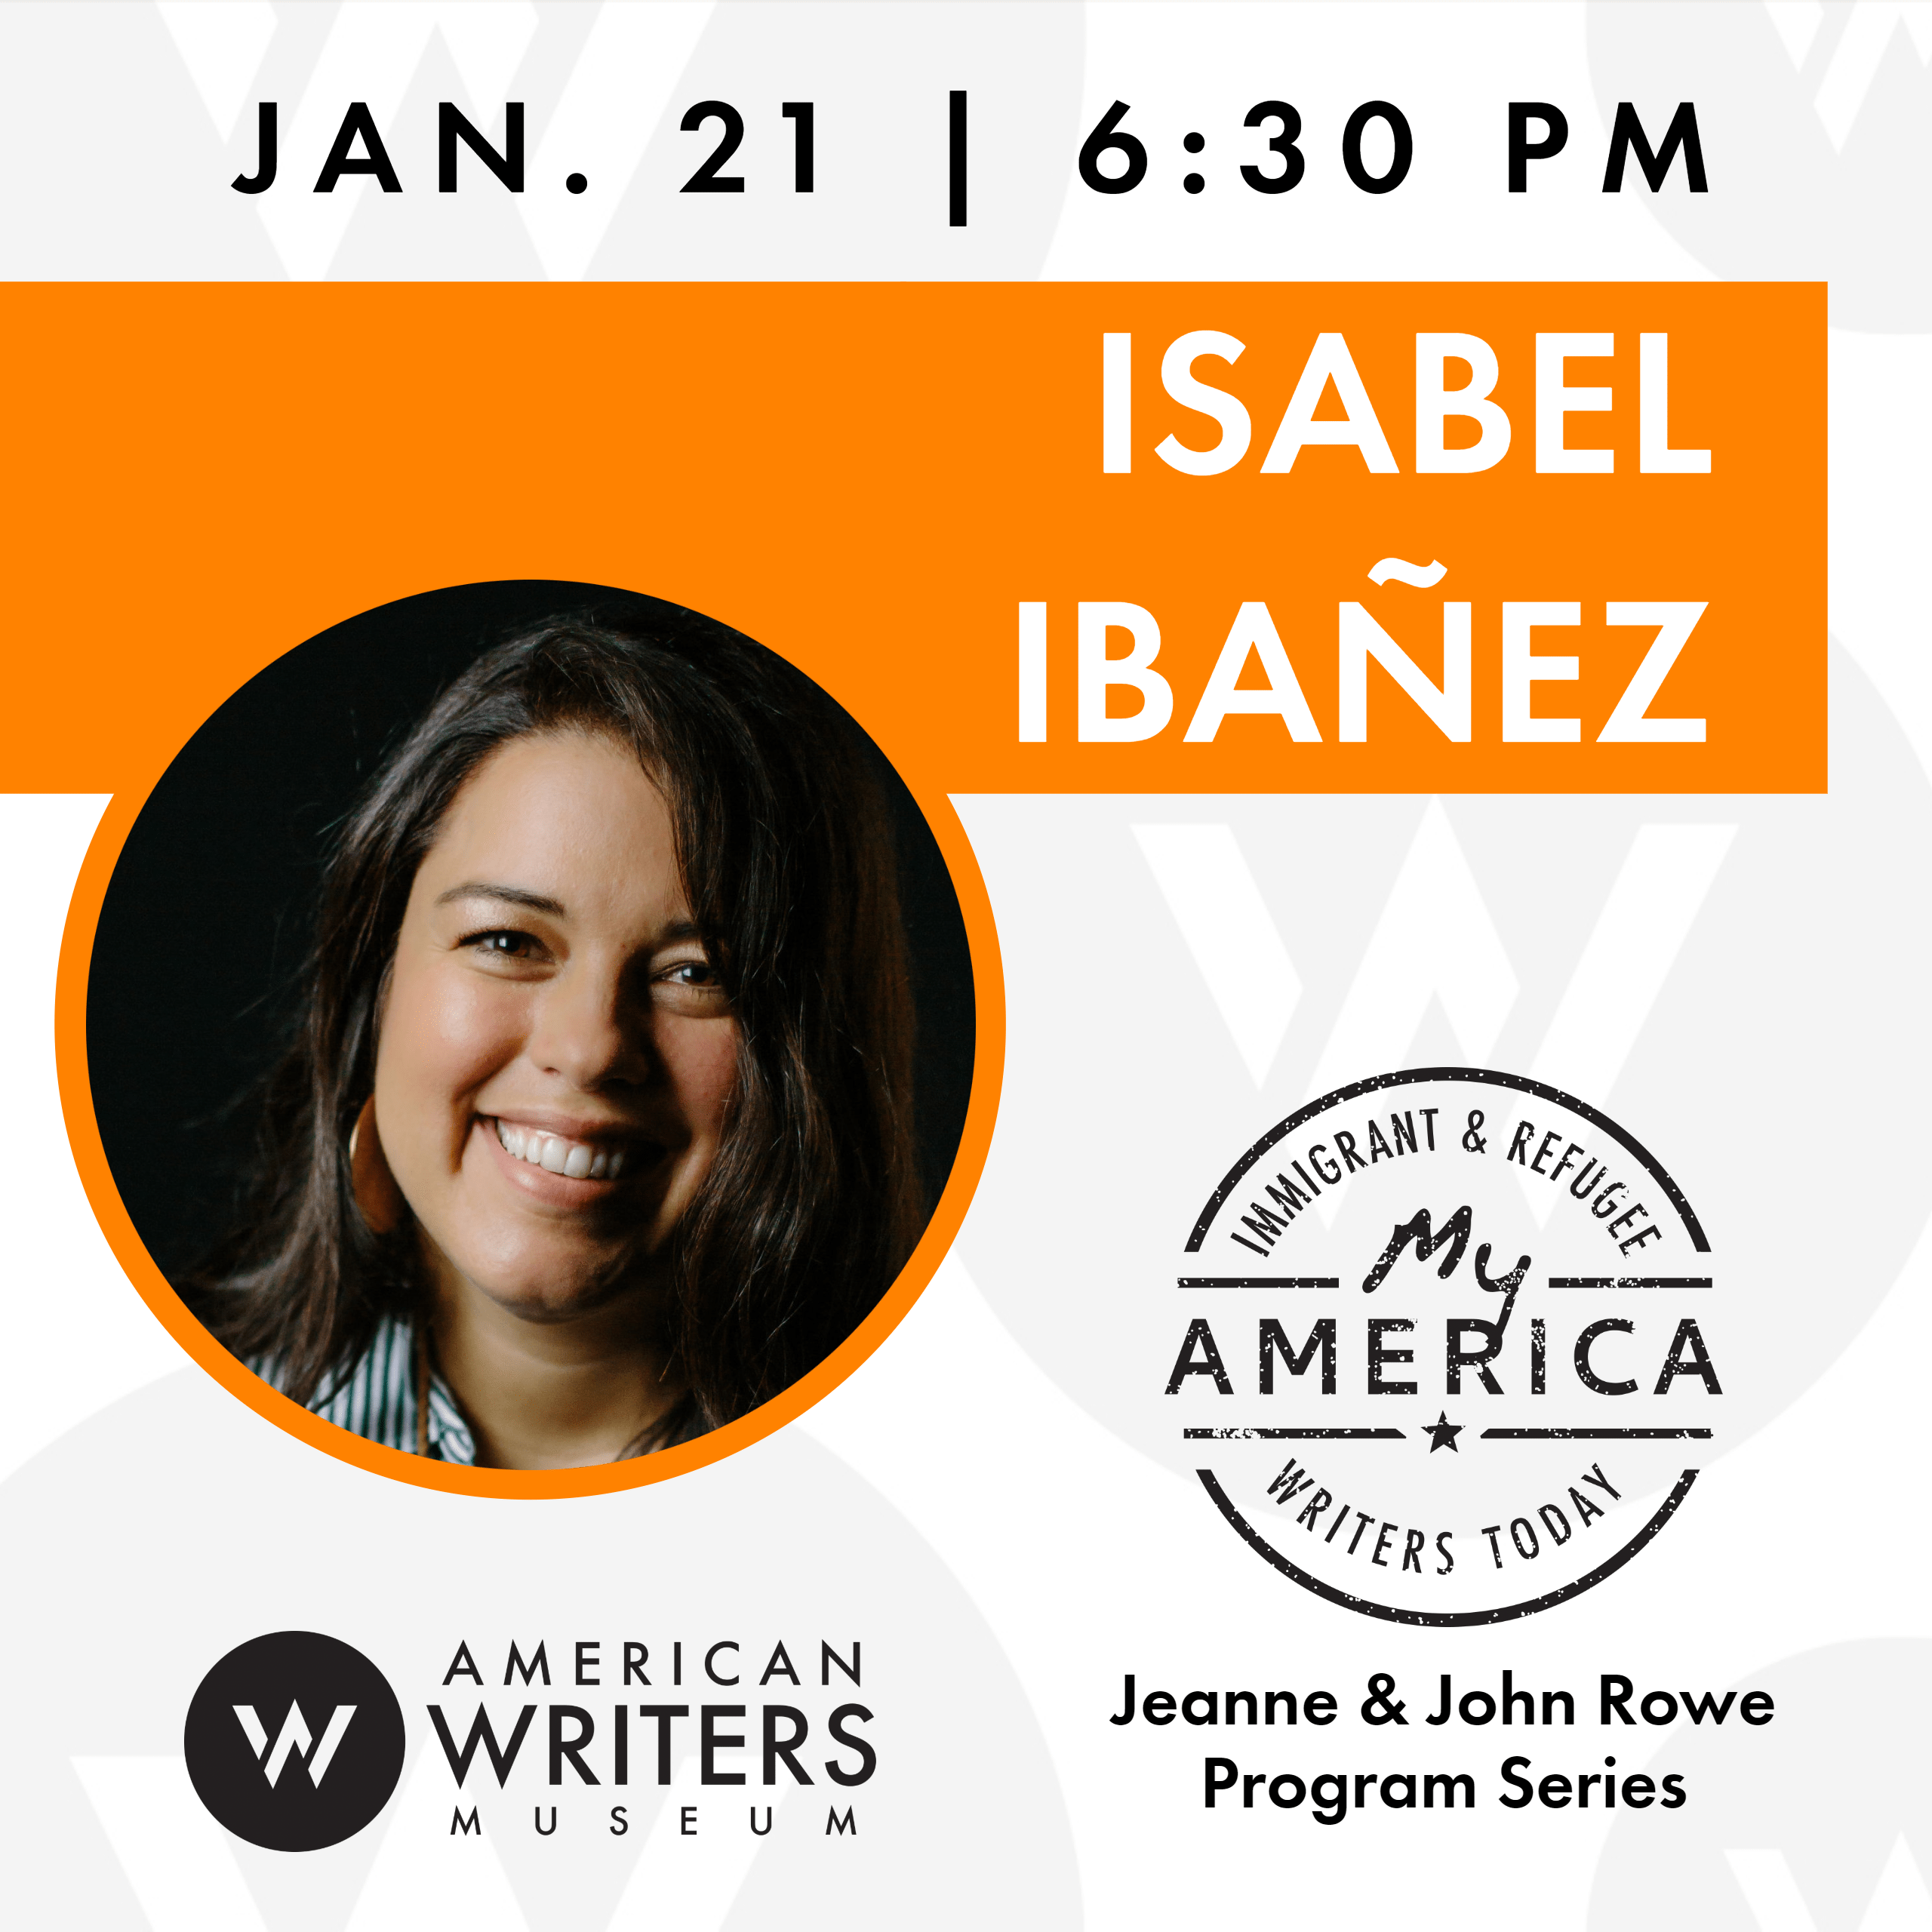 Isabel Ibanez at the American Writers Museum on January 21